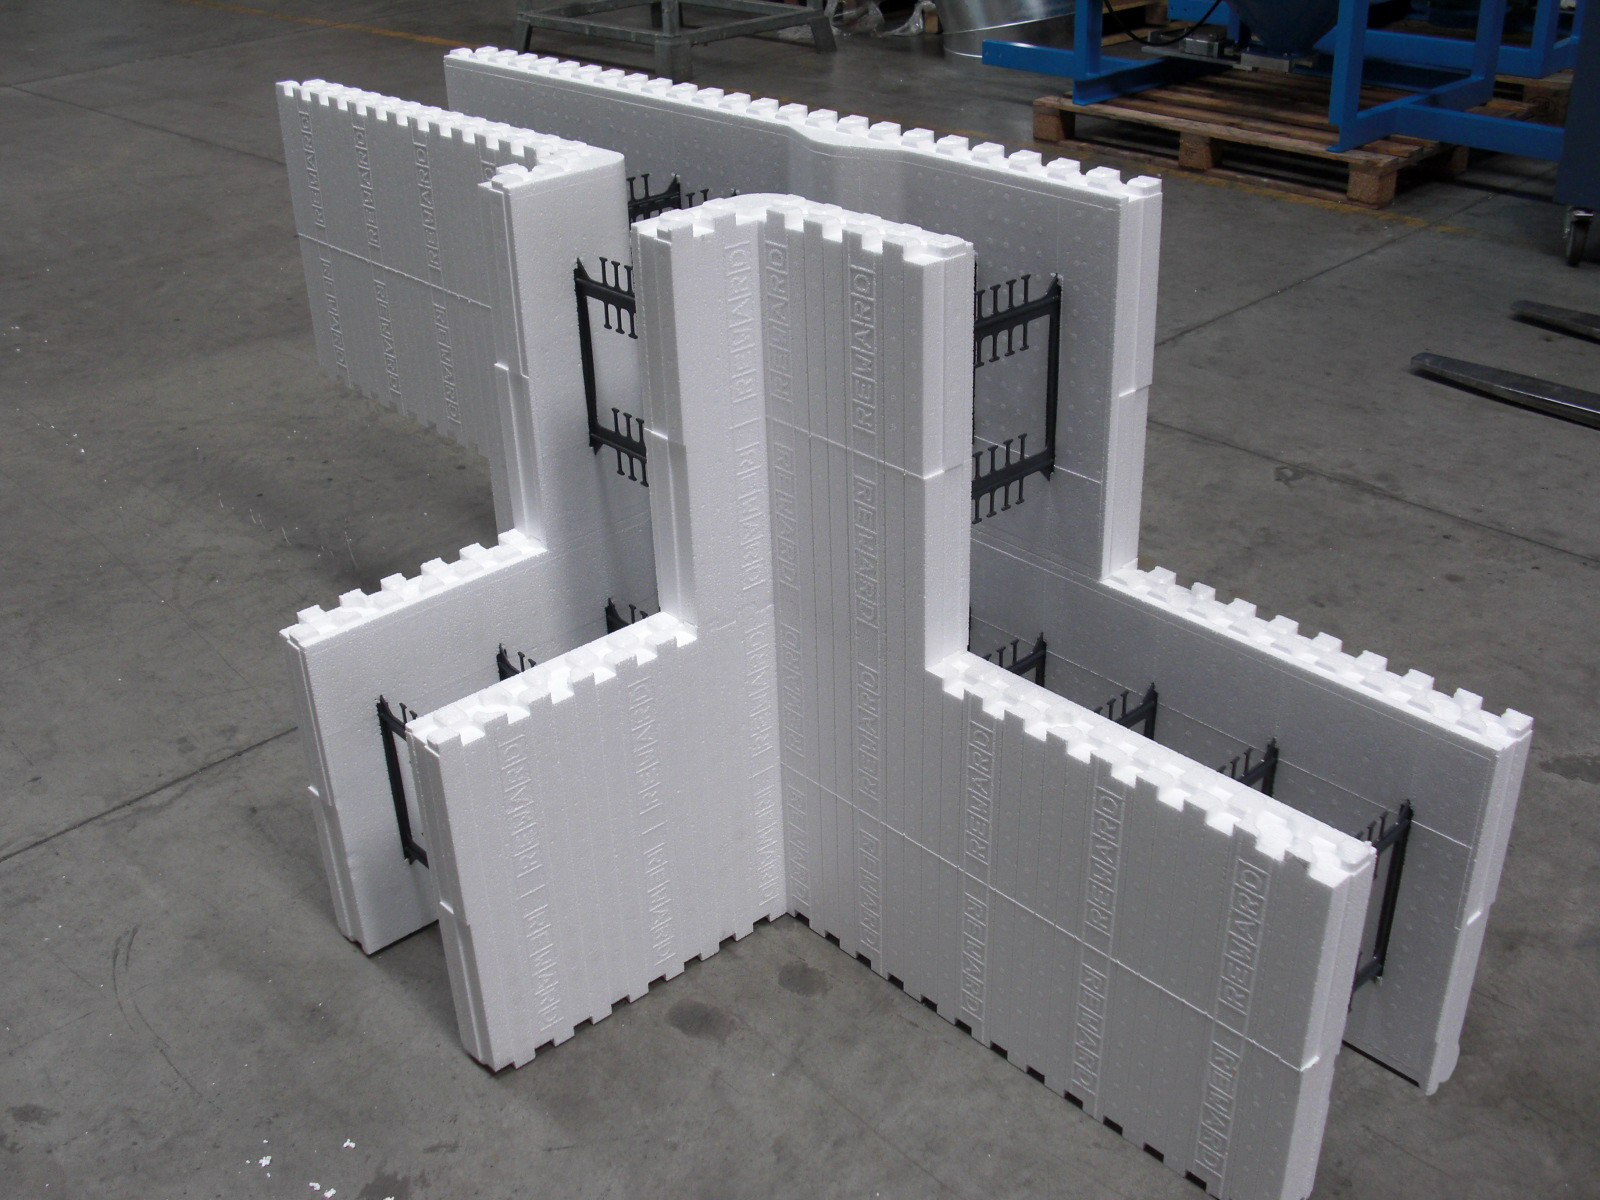 Reward Introduces the New 13 Tform Insulated Concrete Form to the iForm Product Line